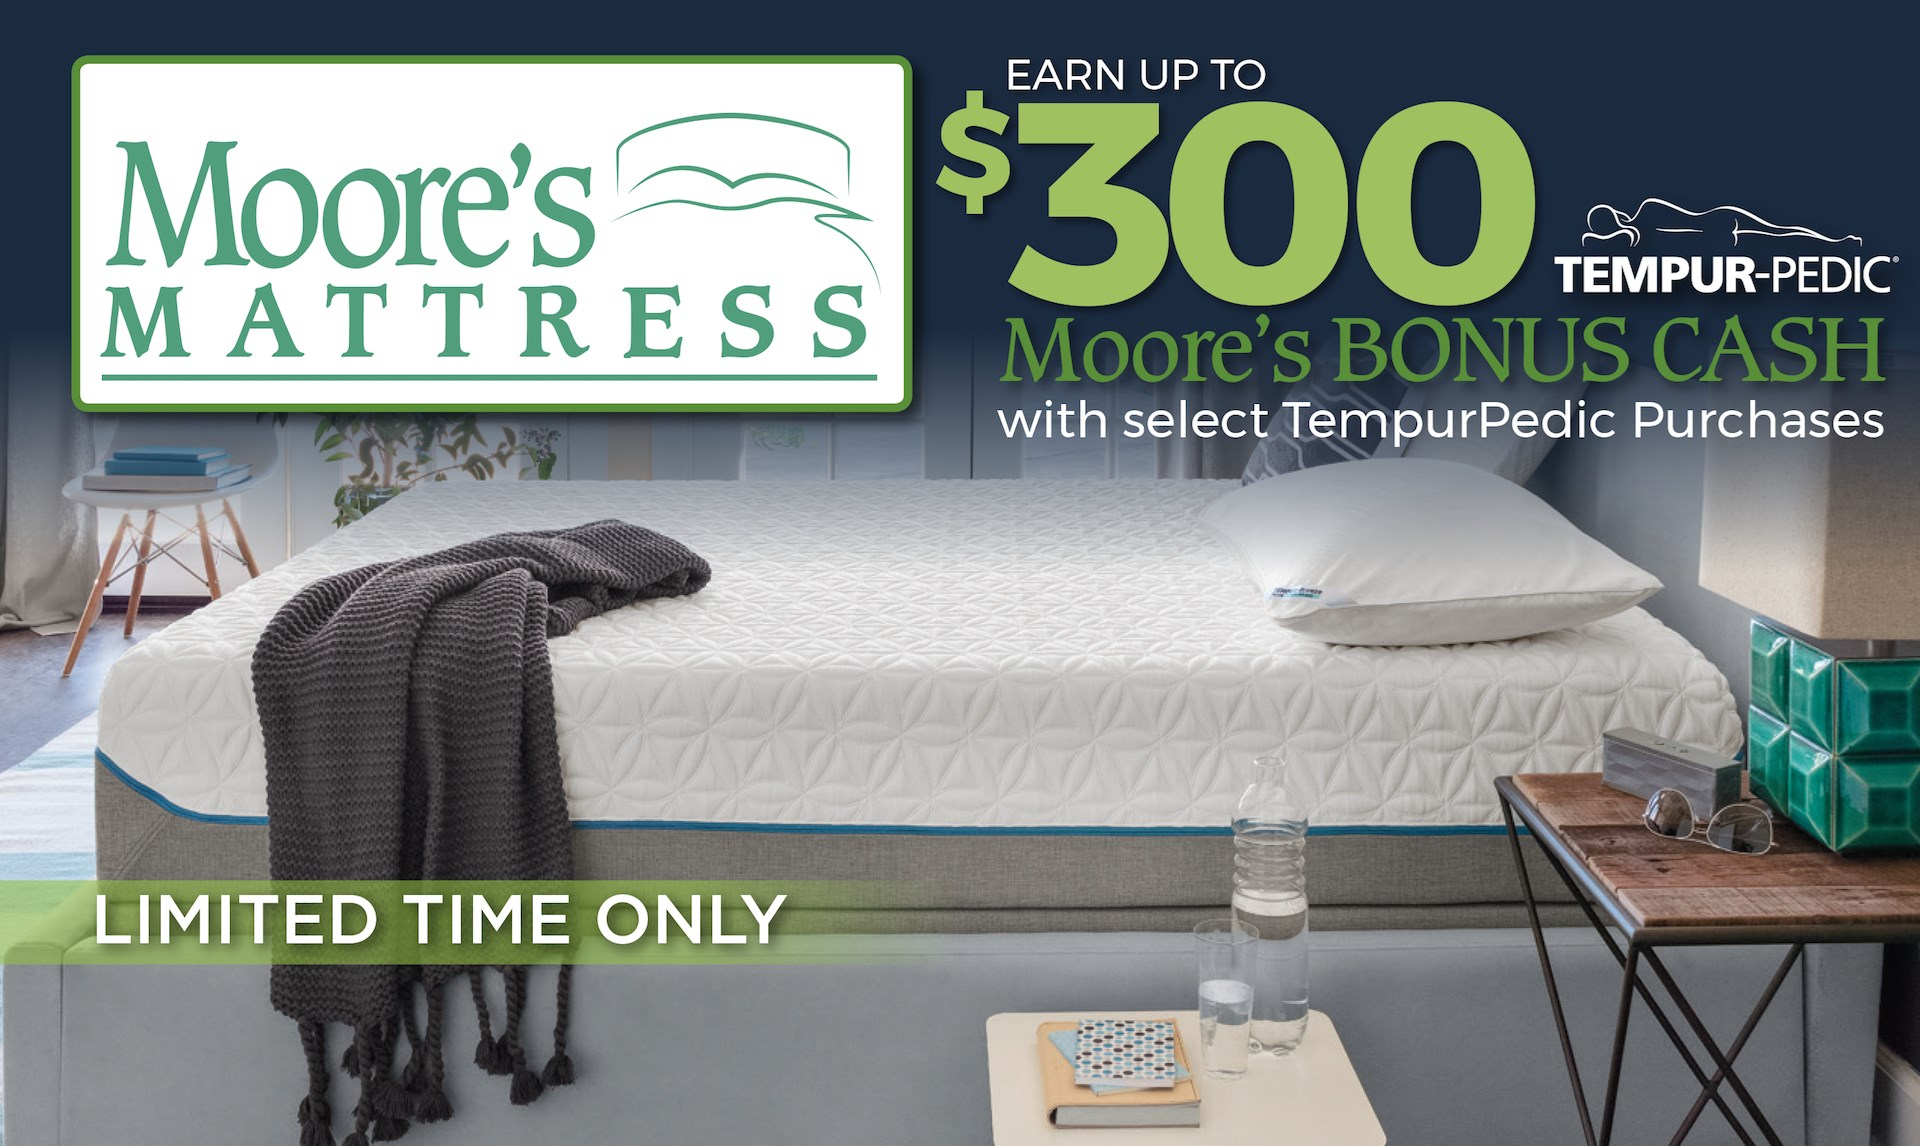 Earn up to $300 Moore's Bonus Cash with select TempurPedic Purchases